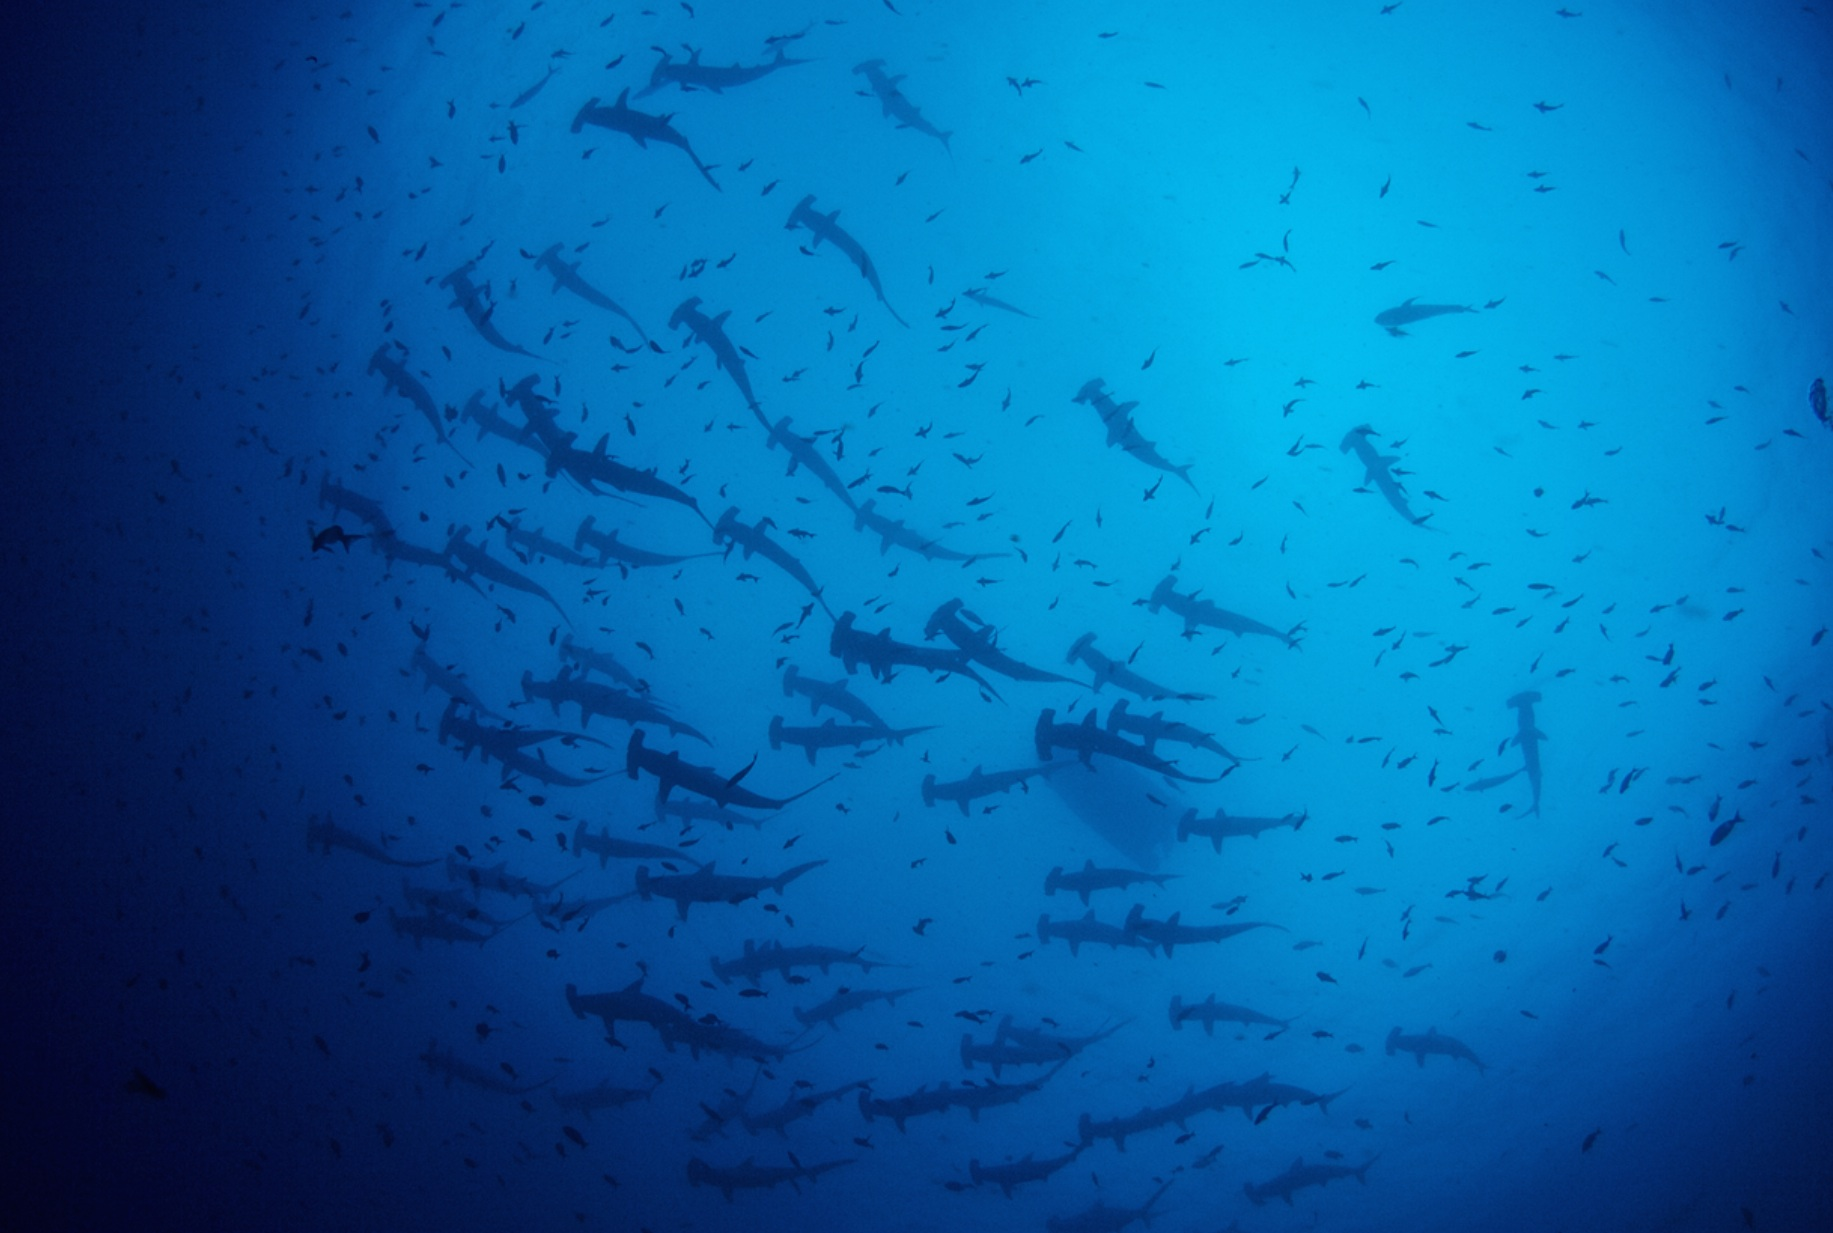 Northern Galápagos Islands is home to the world's largest shark biomass